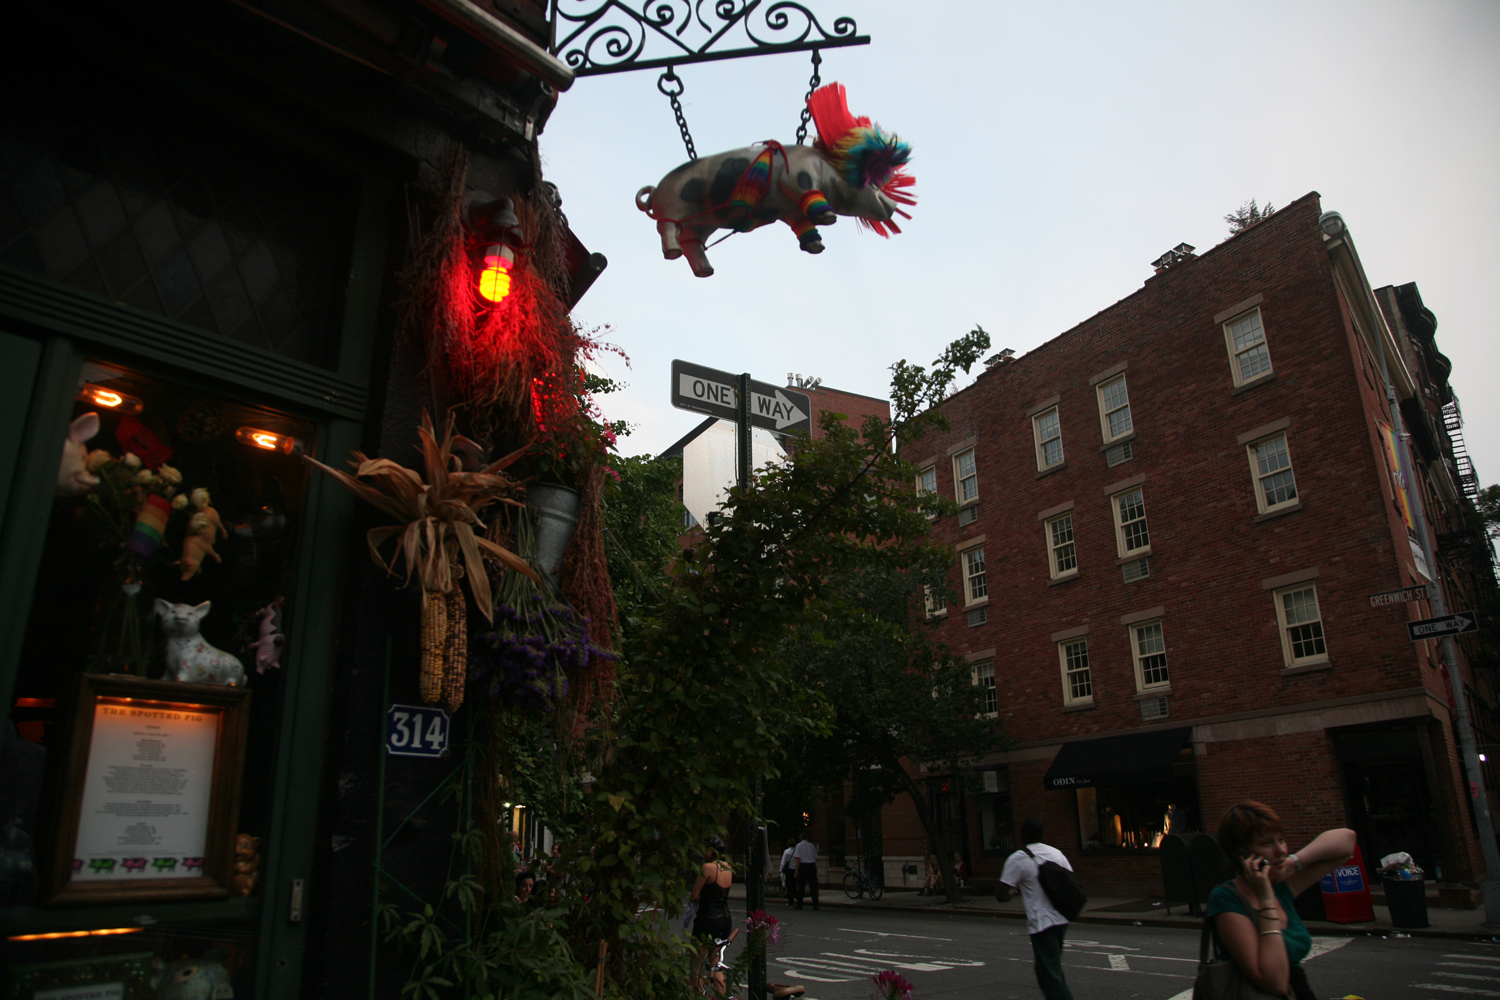 Outside the Spotted Pig in the West Village, June 26, 2011.